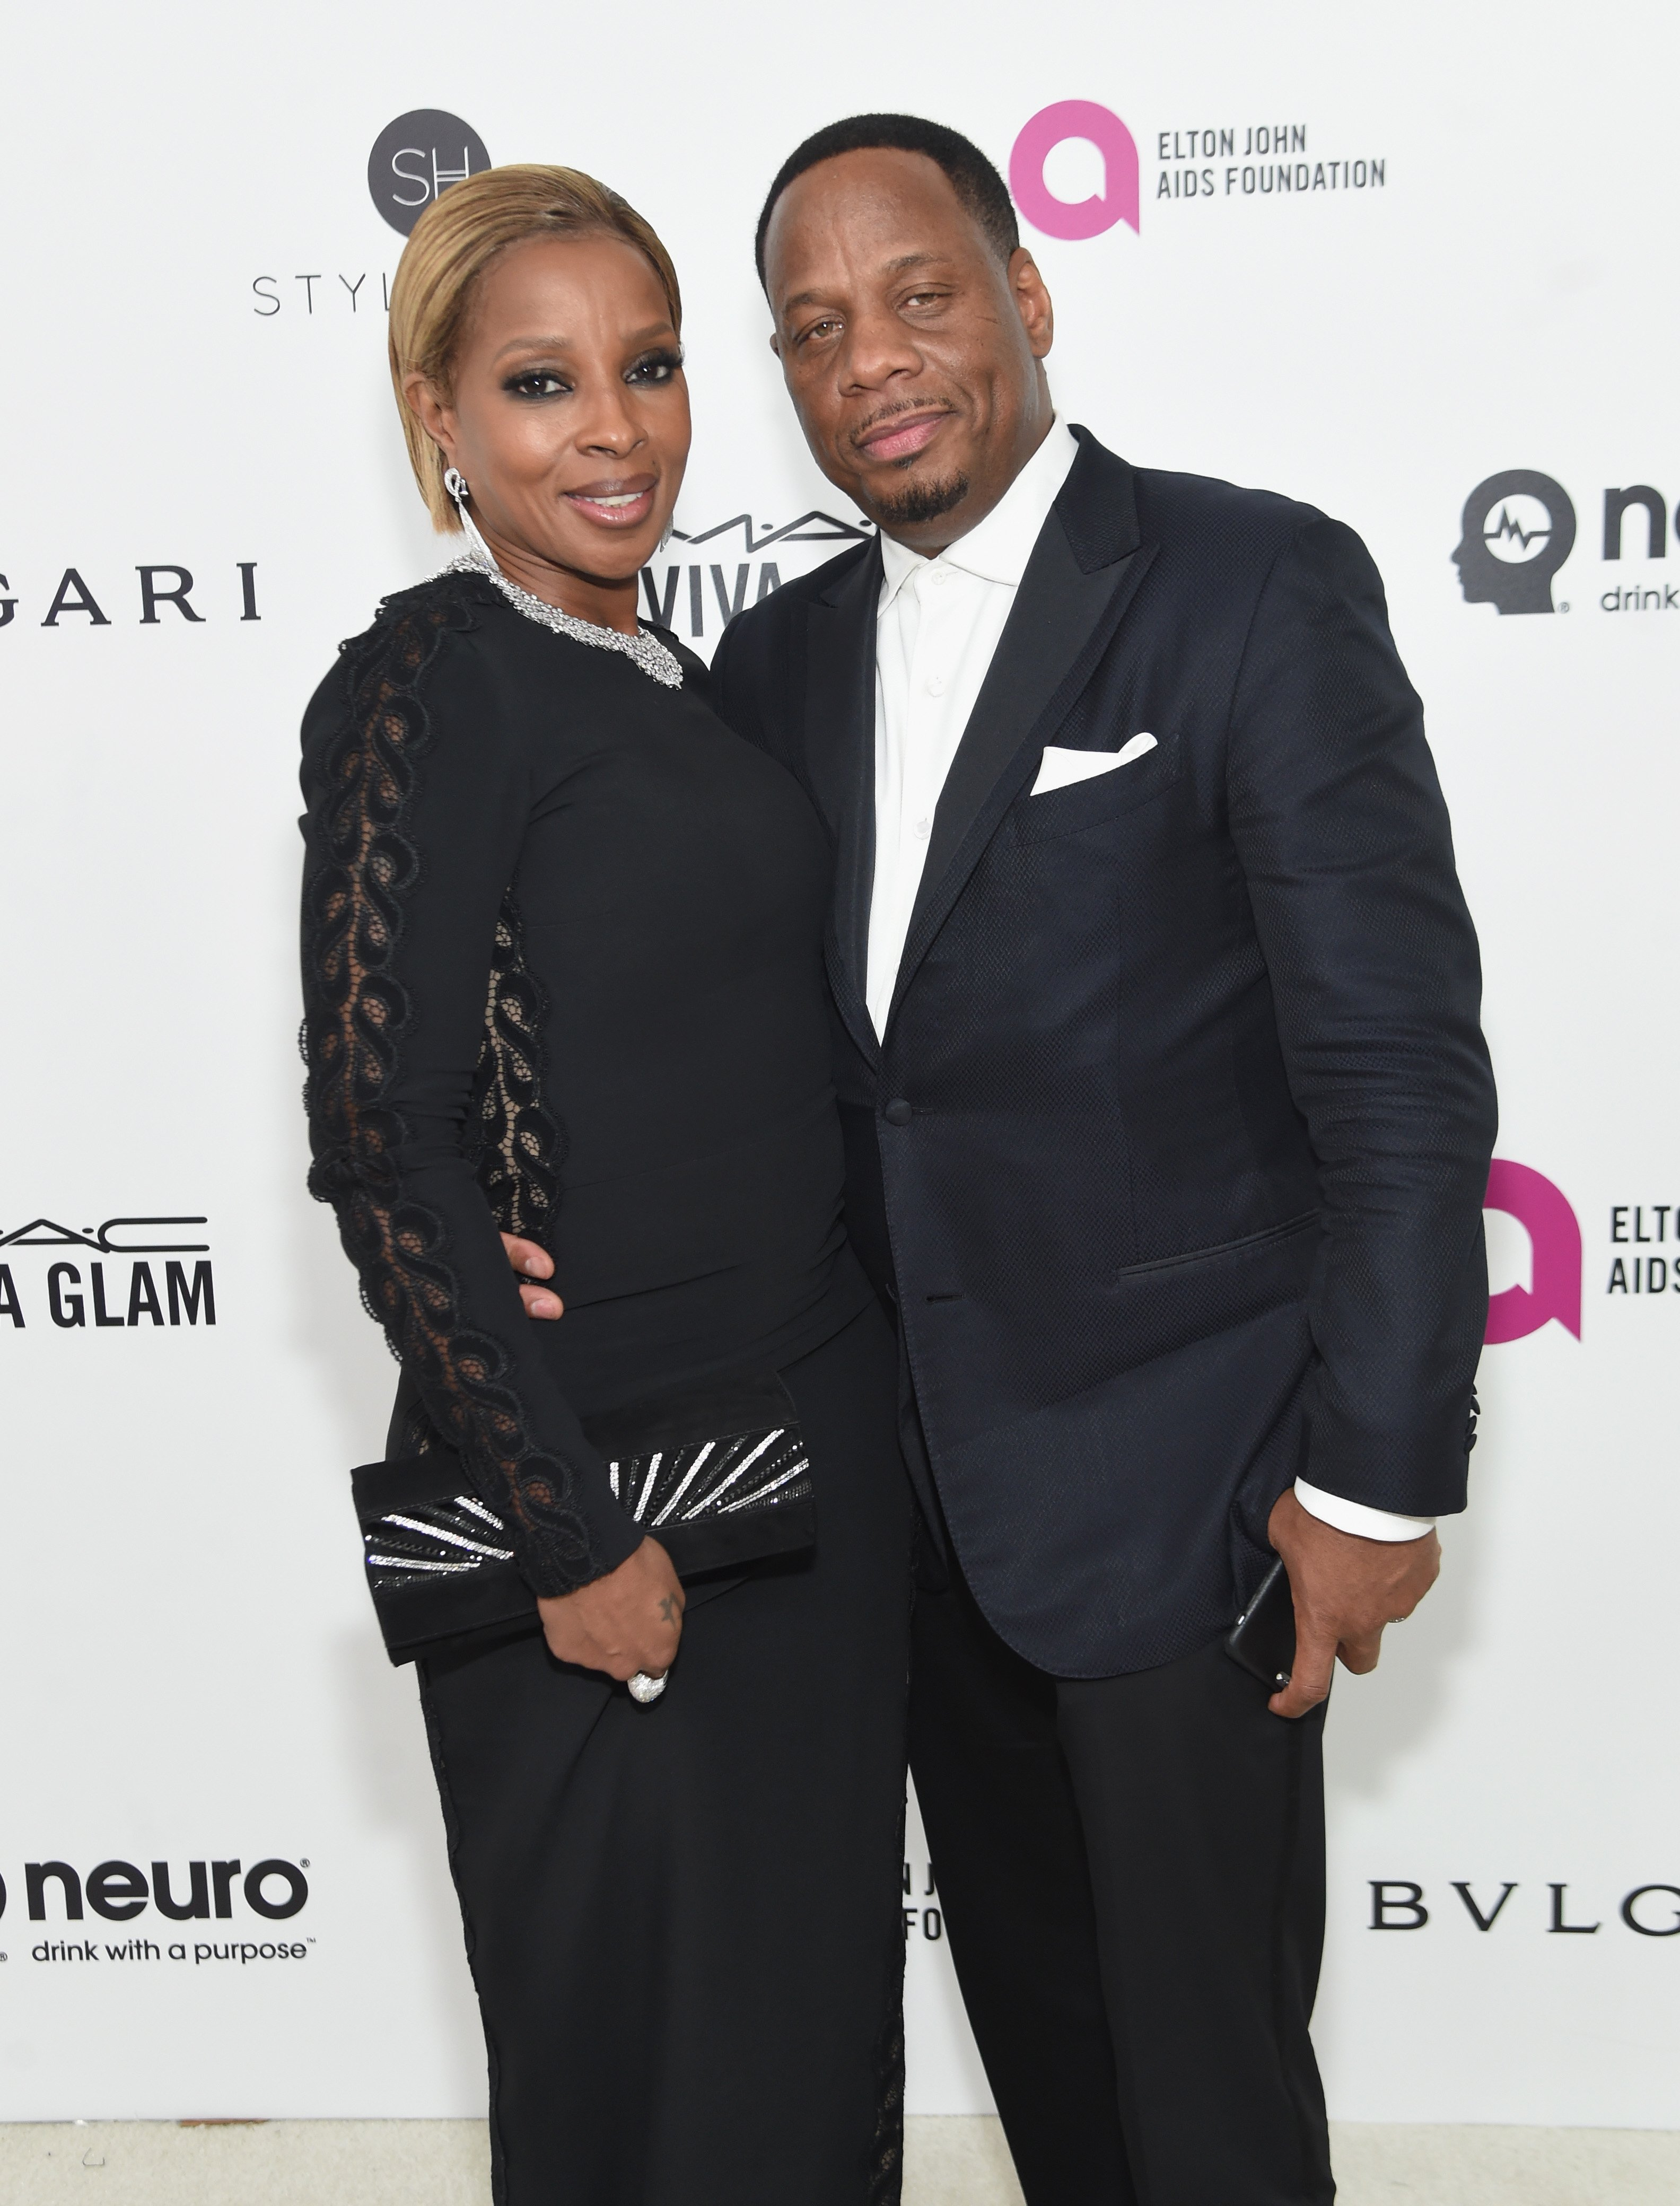 Mary J. Blige and Kendu Isaacs attend the 24th Annual Elton John AIDS Foundation's Oscar Viewing Party on February 28, 2016. | Photo: GettyImages